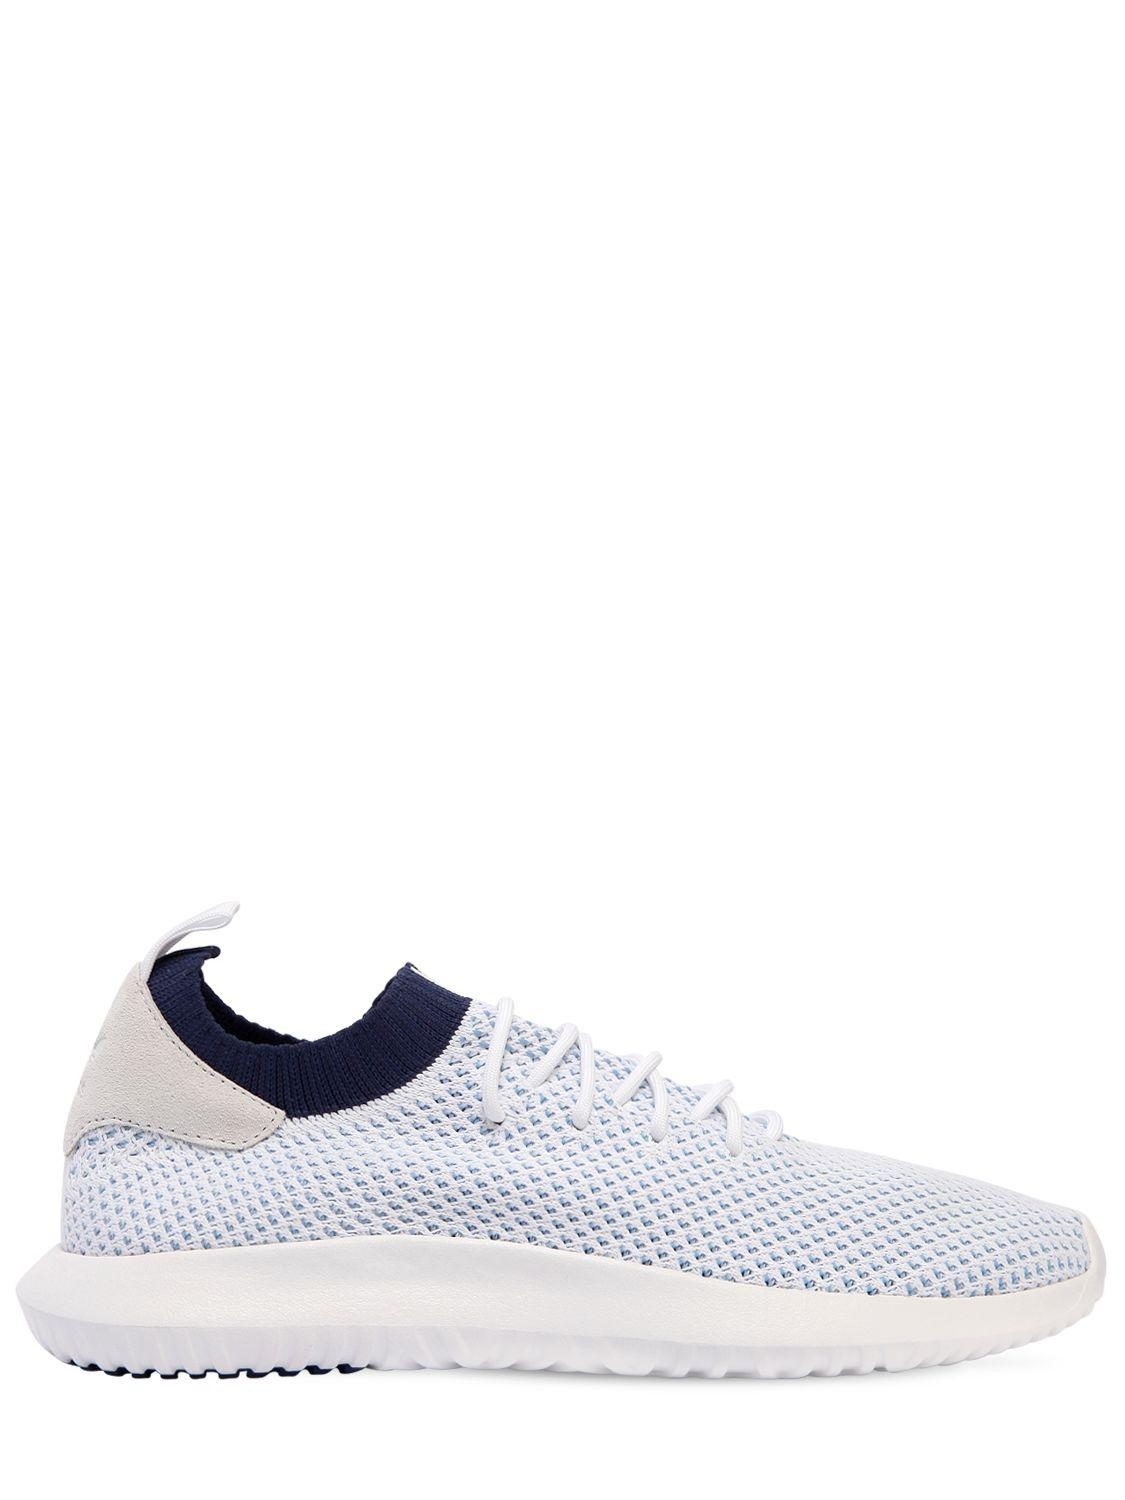 big sale 5caeb 146c9 adidas-originals-WHITE-Tubular-Shadow-Primeknit-Sneakers.jpeg